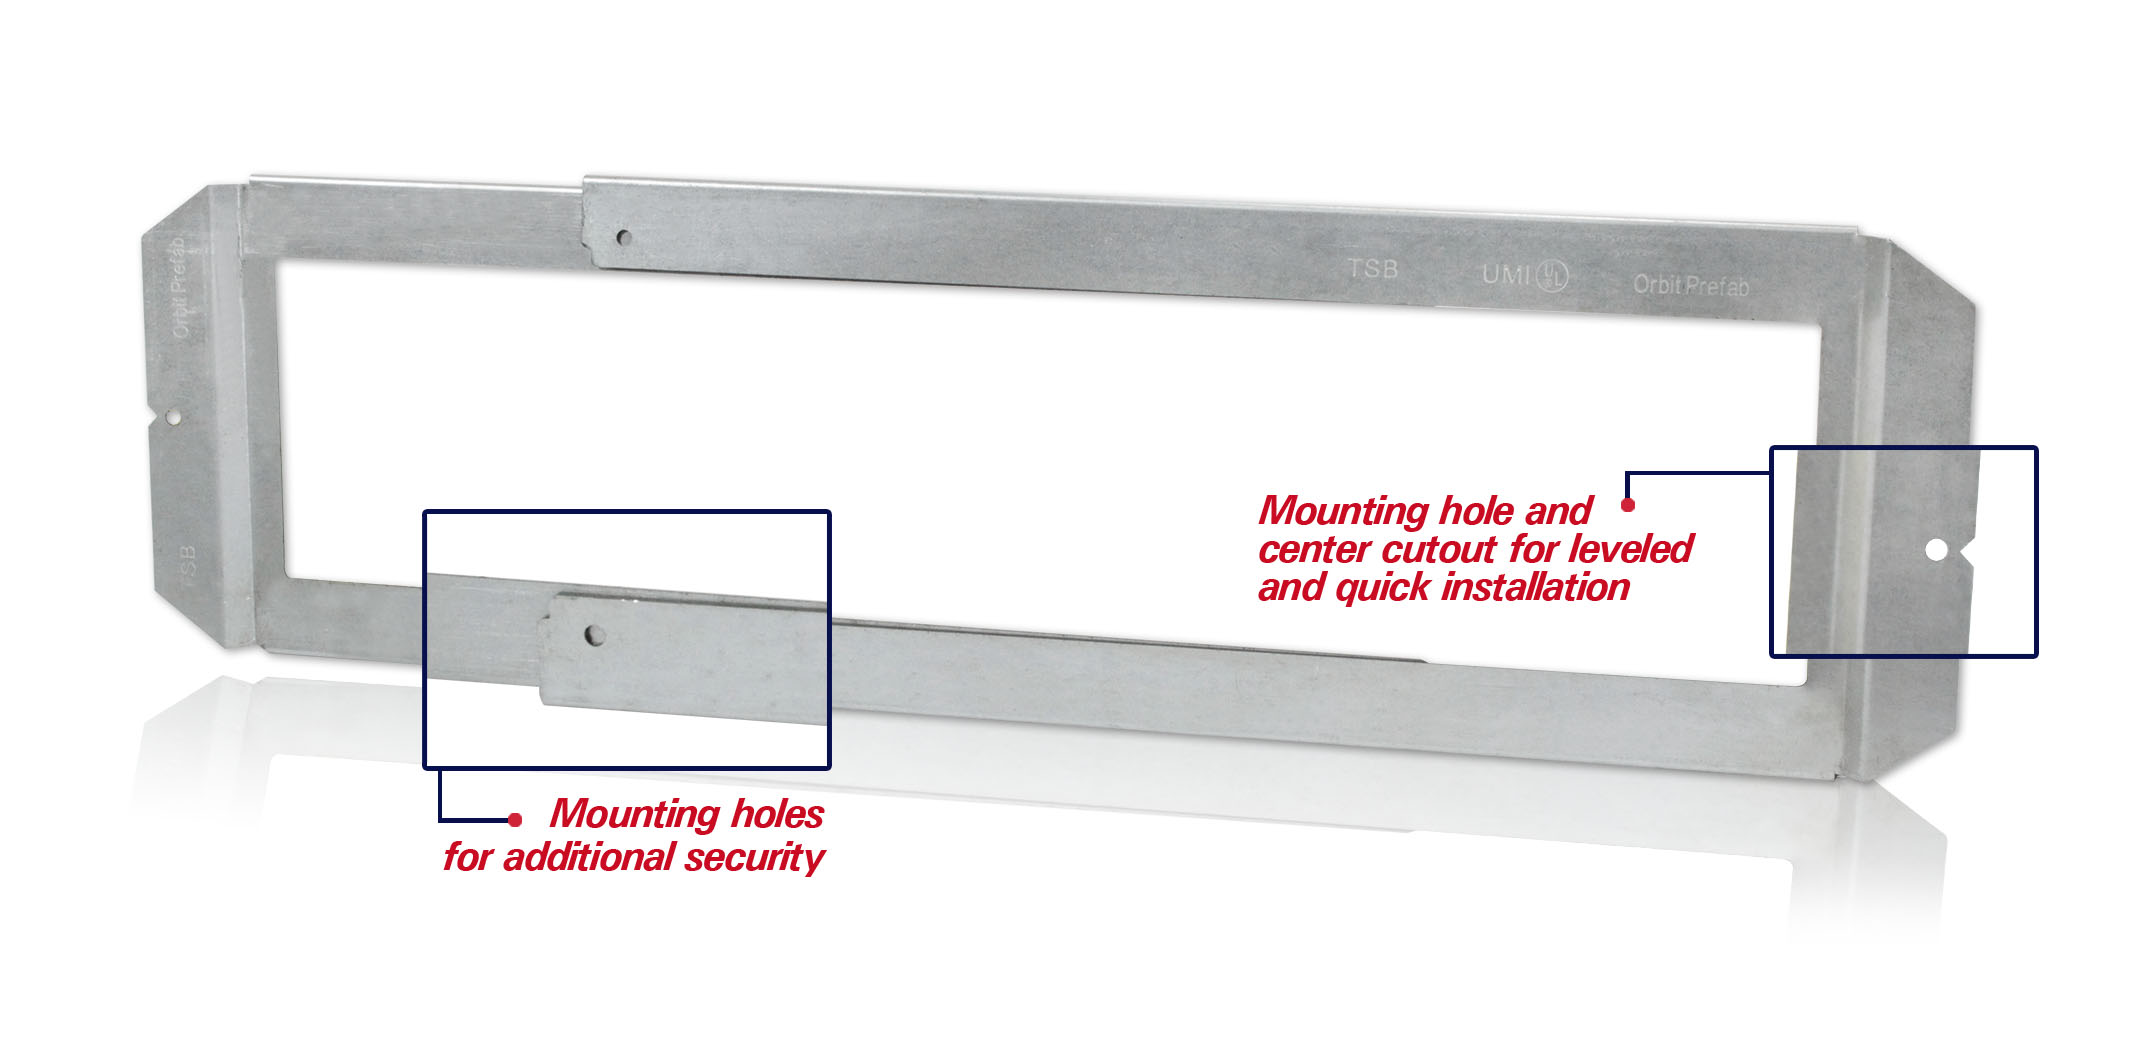 TSB mounting hole and centerline marking